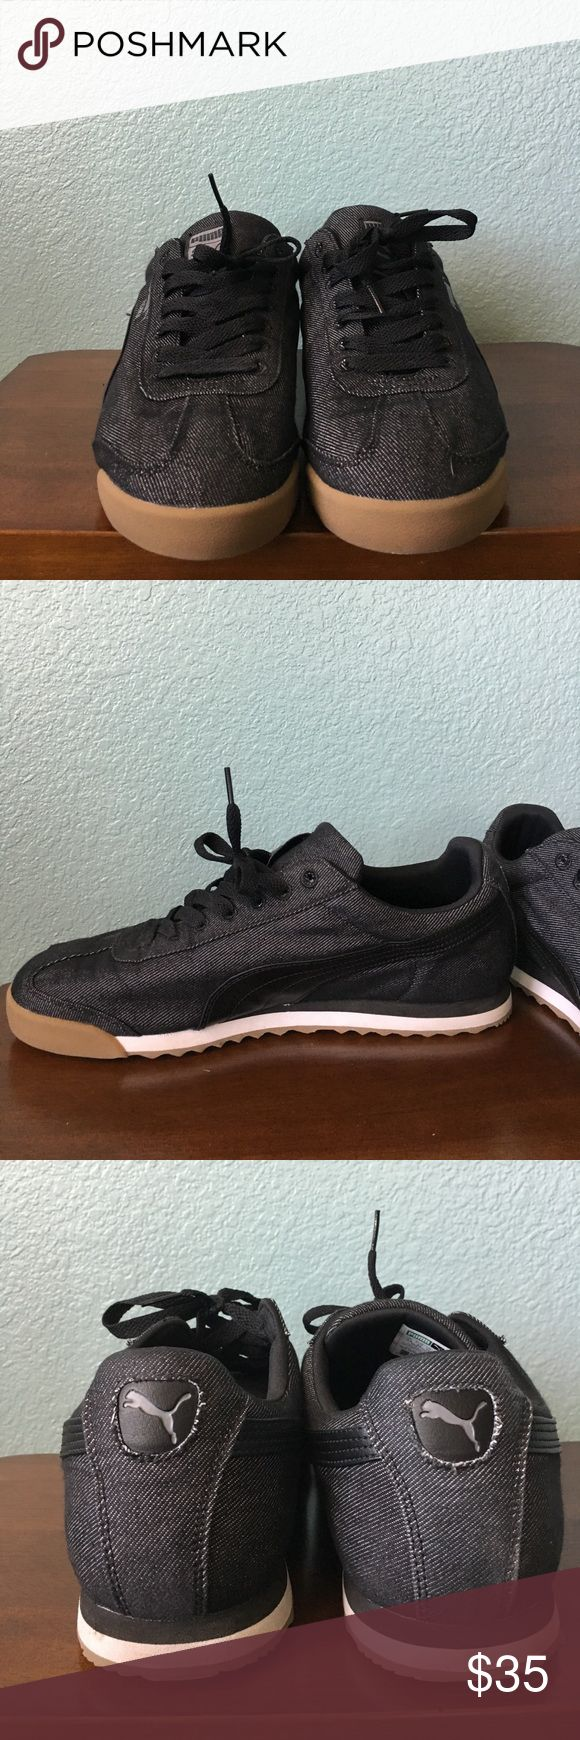 Puma Roma Men's Black Puma Athletic sneaker. Worn a few times. Still like new. Selling new online for $40. Price is firm. Puma Shoes Sneakers